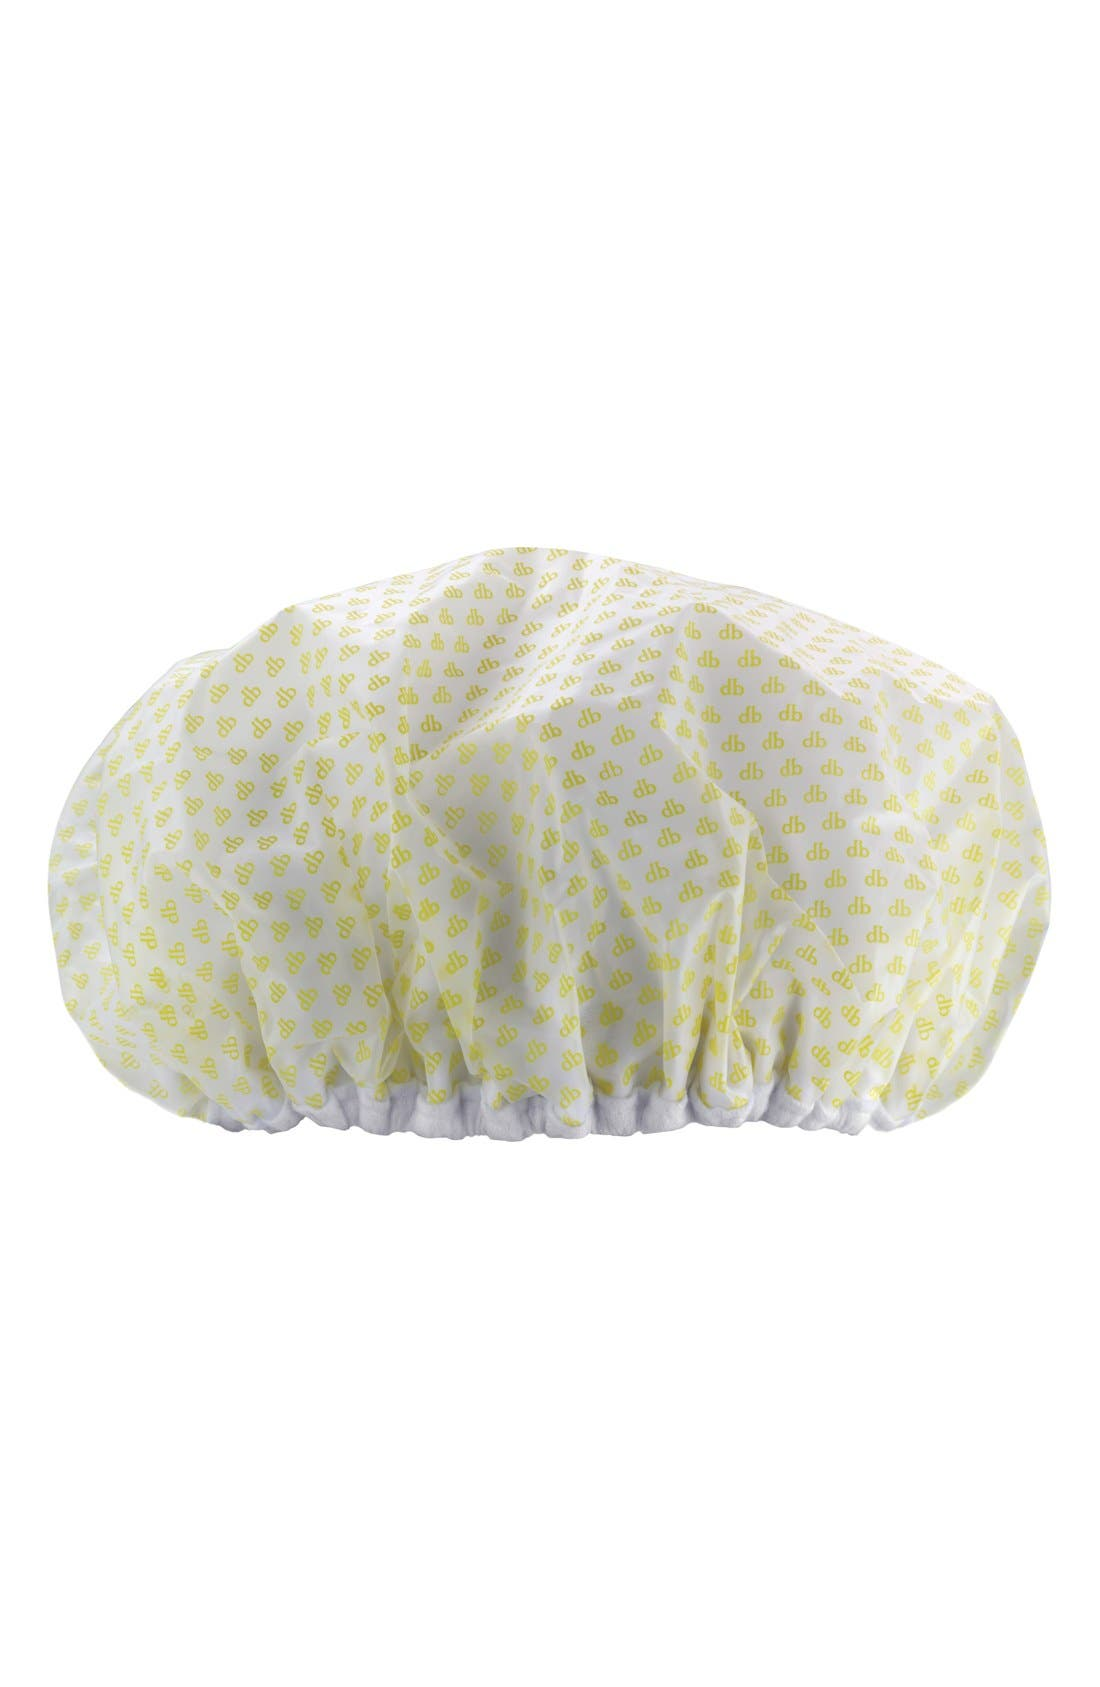 'The Morning After' Shower Cap,                             Main thumbnail 1, color,                             NO COLOR